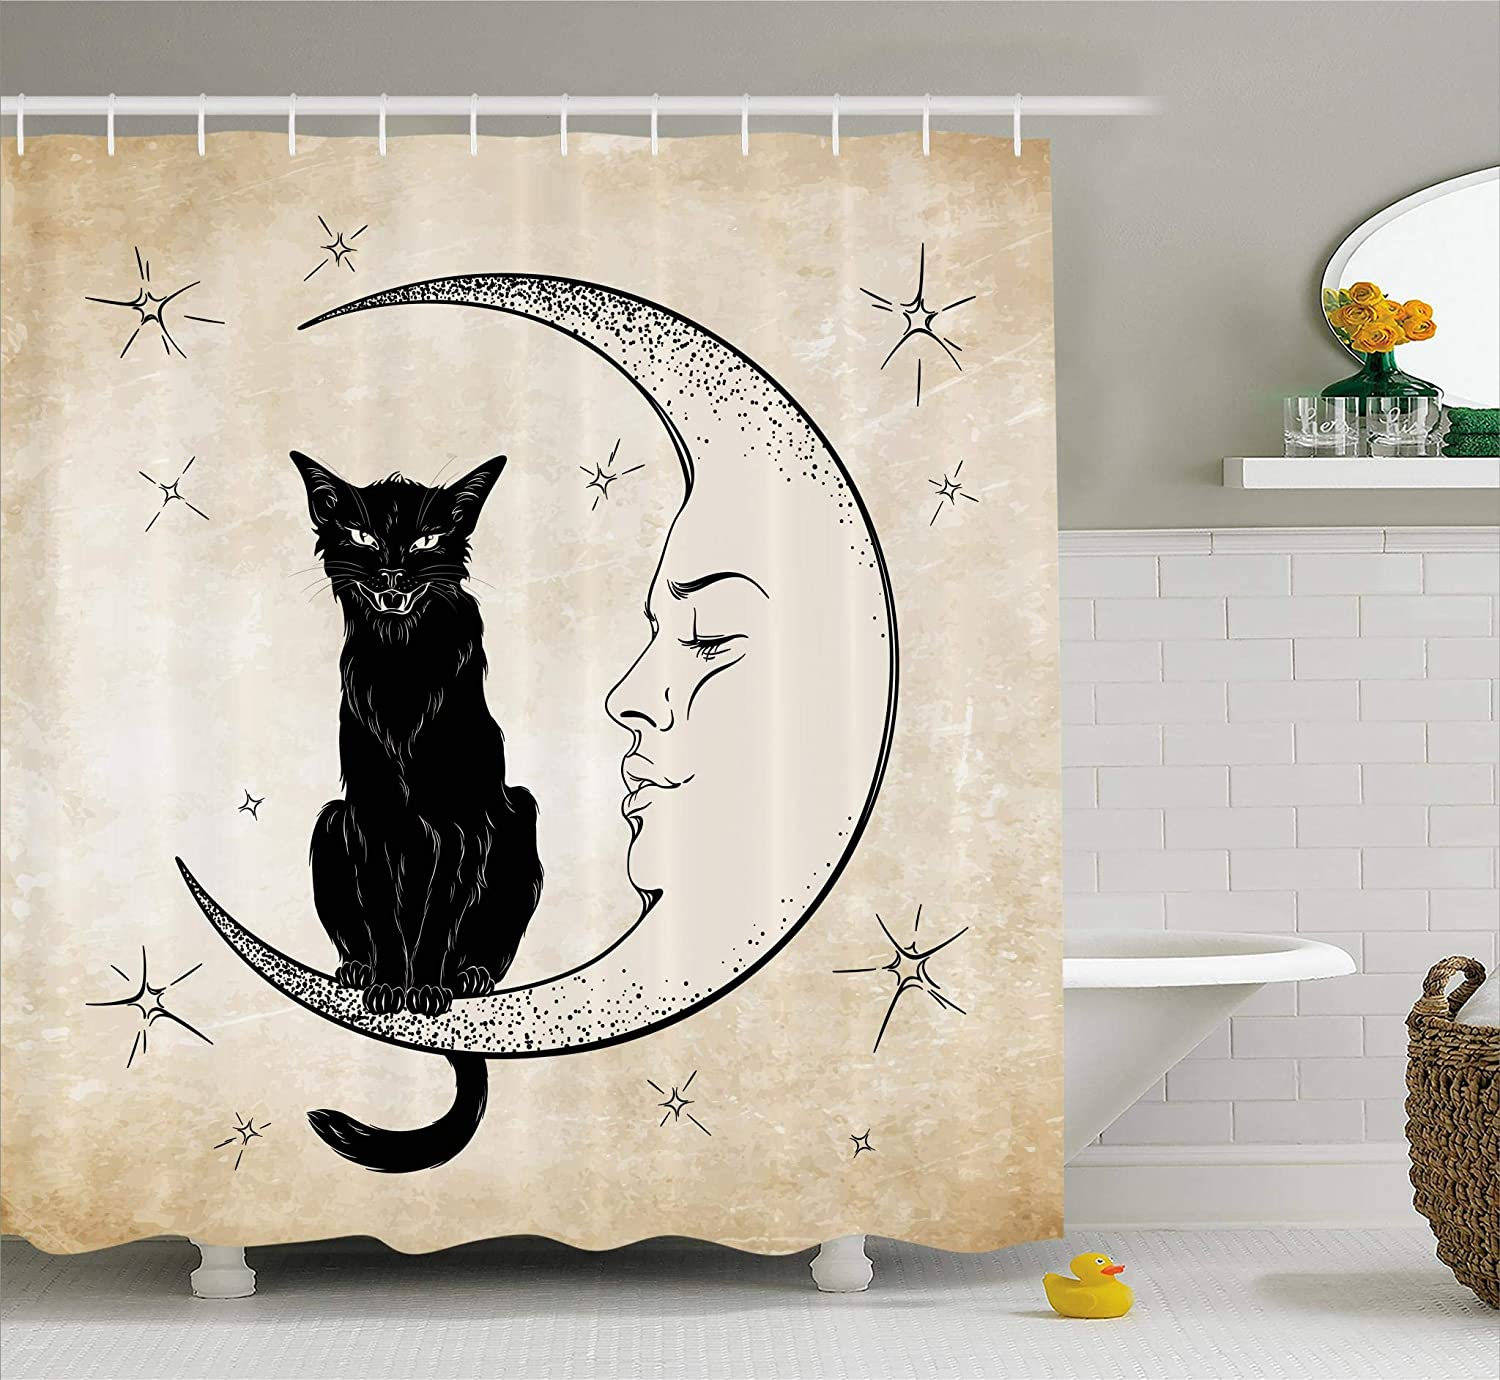 Ambesonne Moon Shower Curtain by, Black Cat Sitting on White Crescent Moon Contrasting Facial Expressions Feline, Fabric Bathroom Decor Set with Hooks, 70 Inches, Sand Brown Black